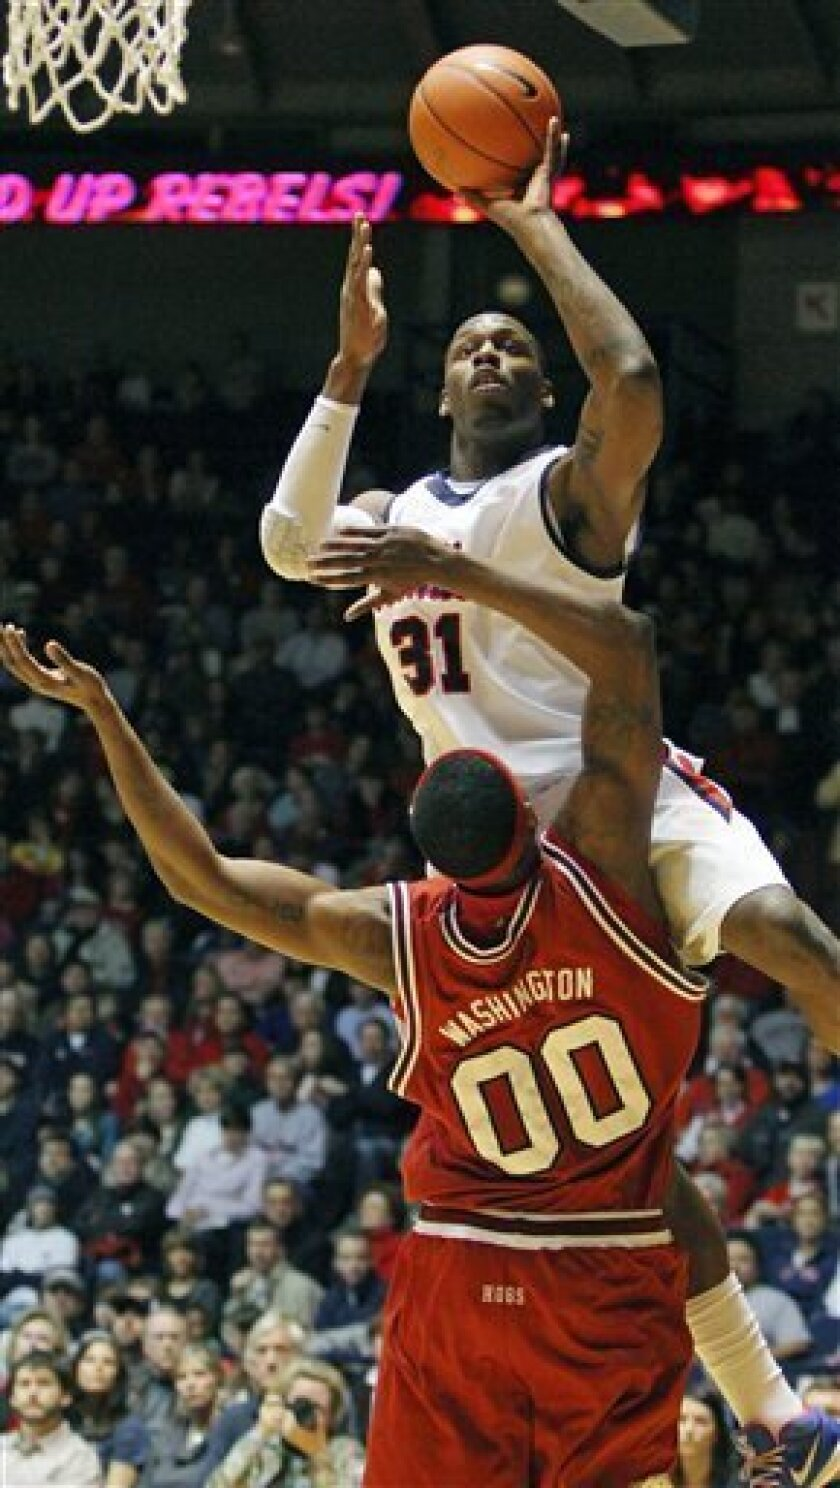 Mississippi forward Holloway Murphy (31) shoots over Arkansas center Mike Washington during the first half of an NCAA college basketball game in Oxford, Miss., Sunday, Jan. 31, 2010. (AP Photo/Rogelio V. Solis)